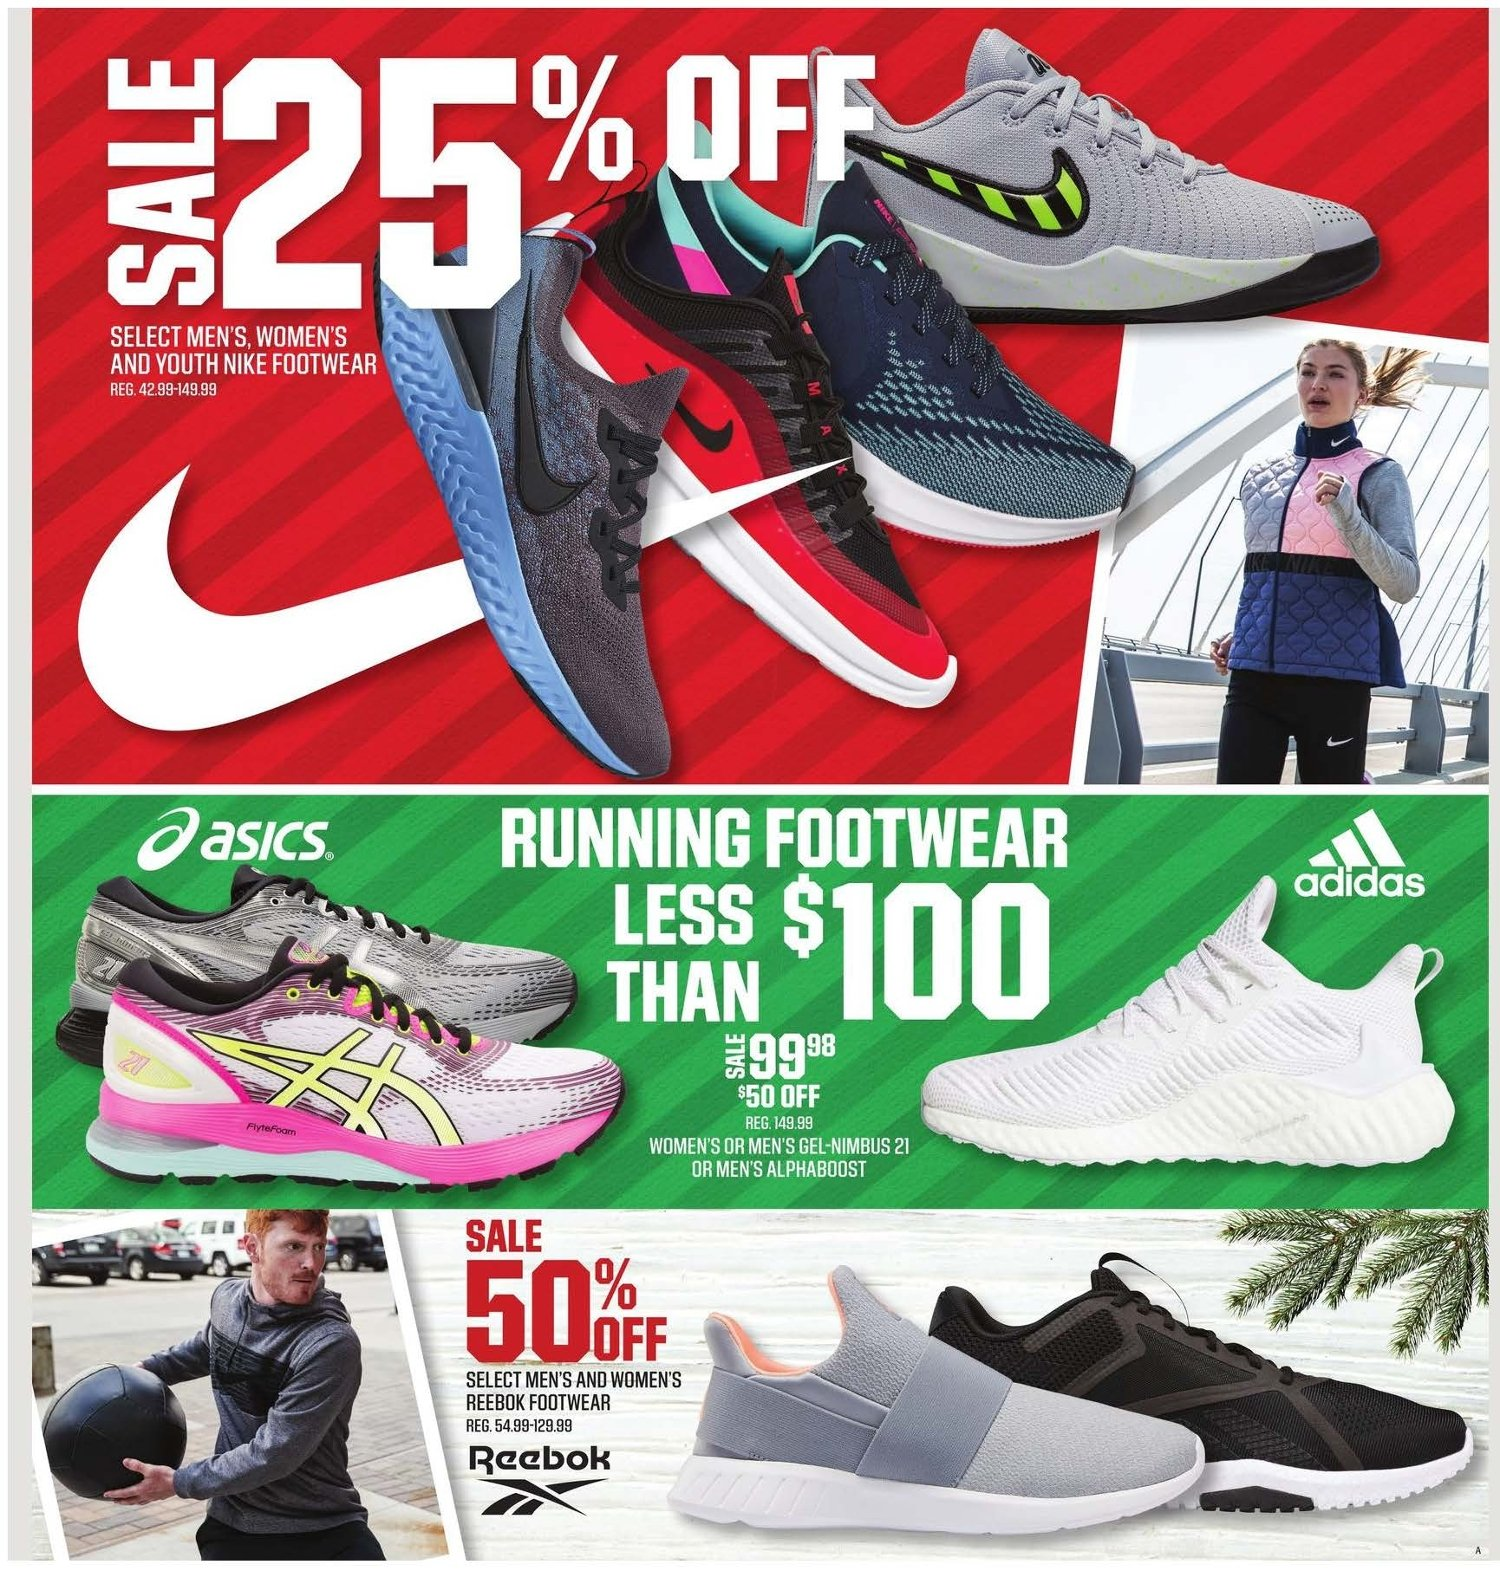 Dick's Sporting Goods Cyber Monday 2019 Page 6